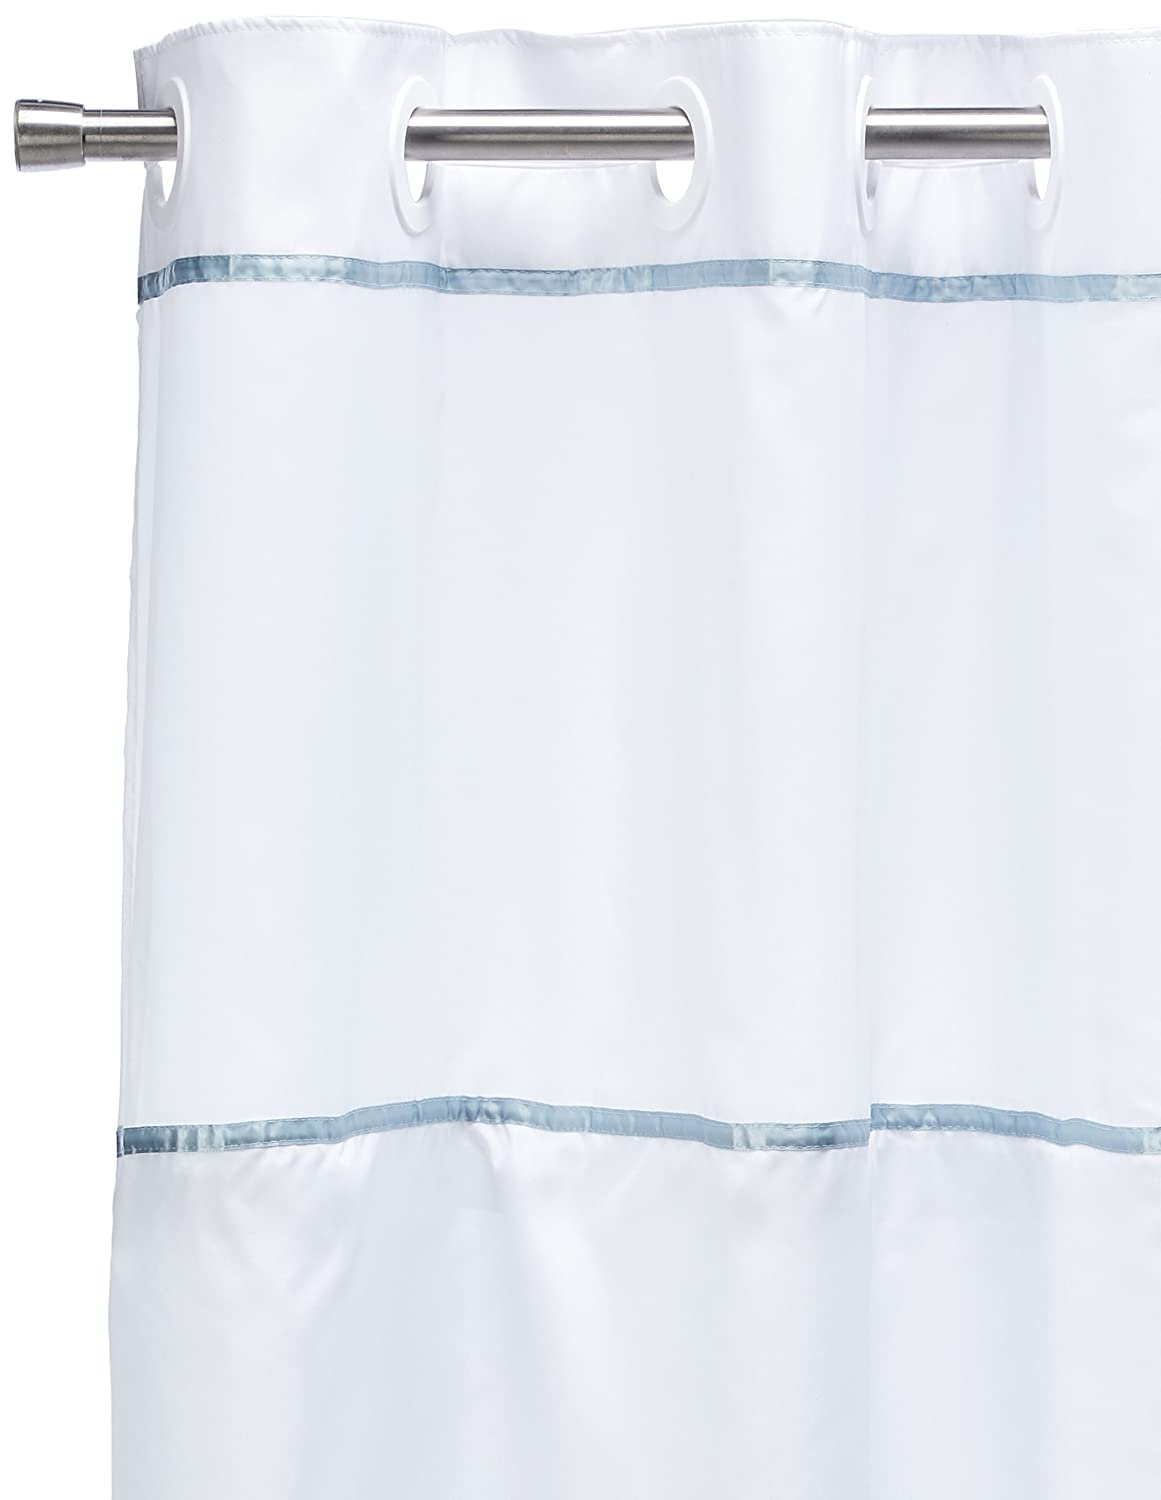 Style selections eva peva print multi fish shower curtain at lowes com - Amazon Com Vision Vinyl Shower Curtain Hookless White With Clear Top Home Kitchen